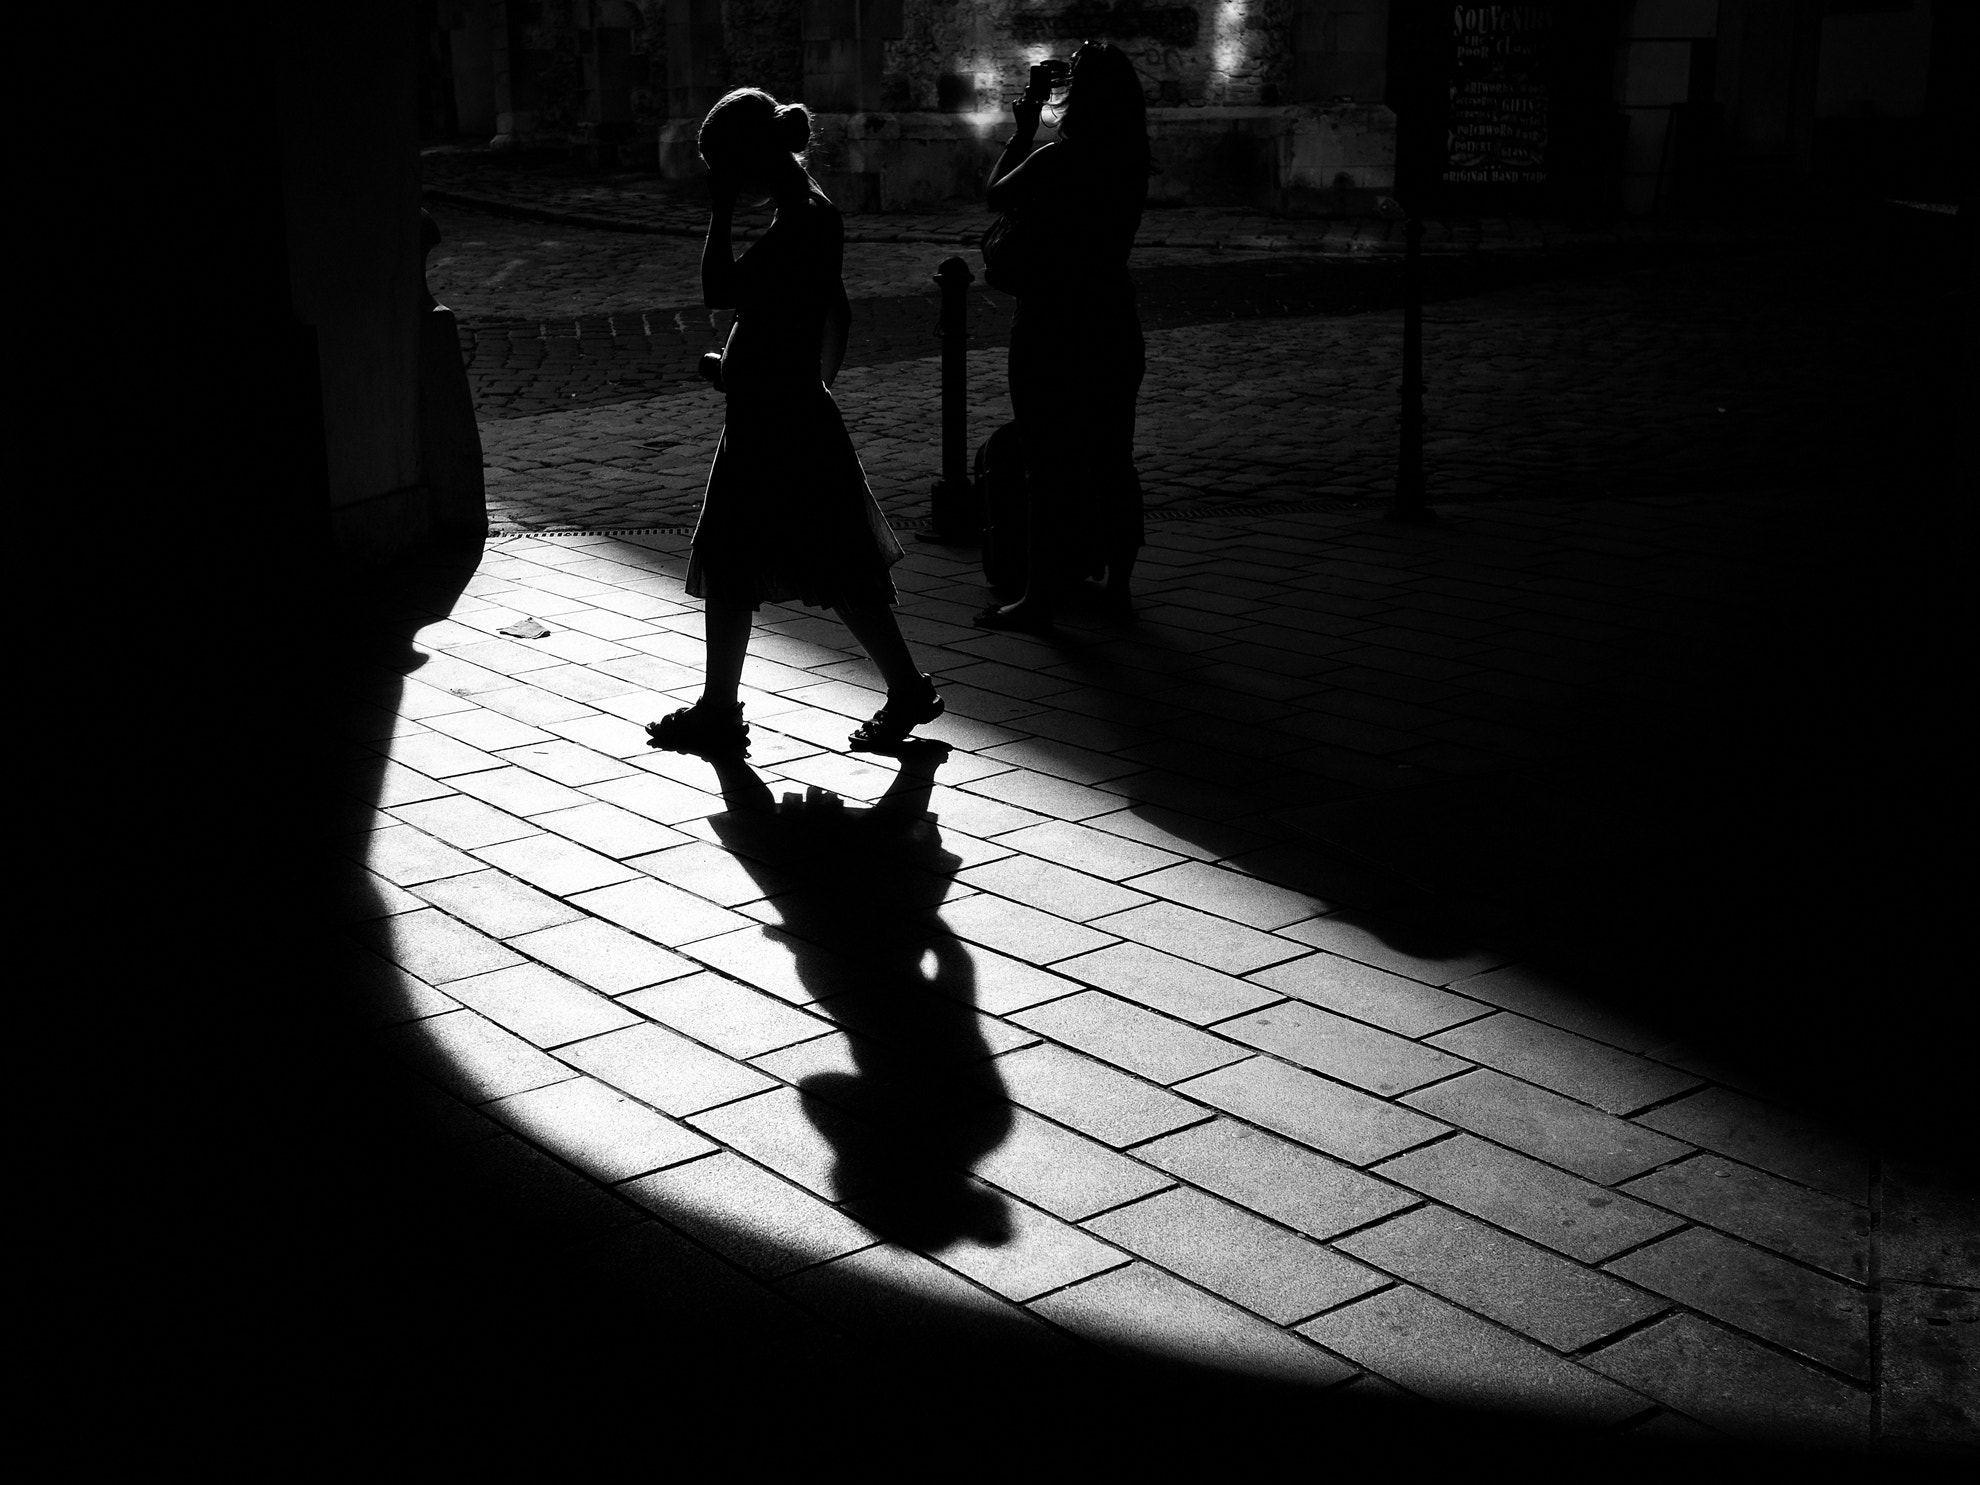 Photograph Silhouette by Martin Hricko on 500px